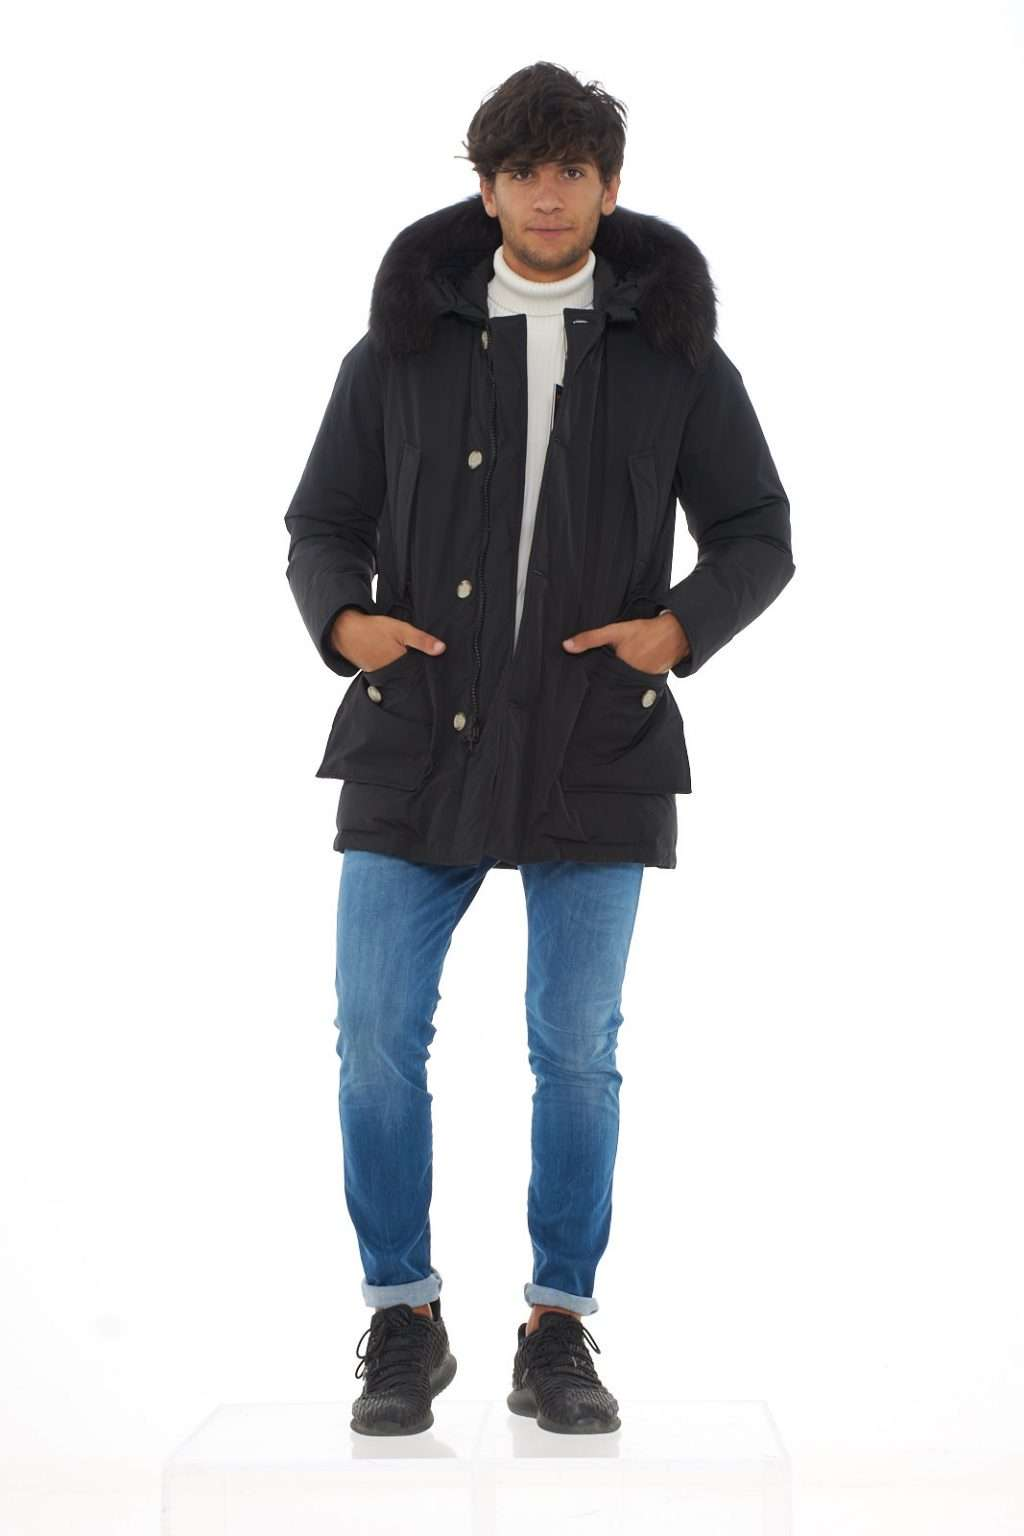 https://www.parmax.com/media/catalog/product/a/i/ai-outlet_parmax-giubbotto-uomo-woolrich-wocps2708-d.jpg